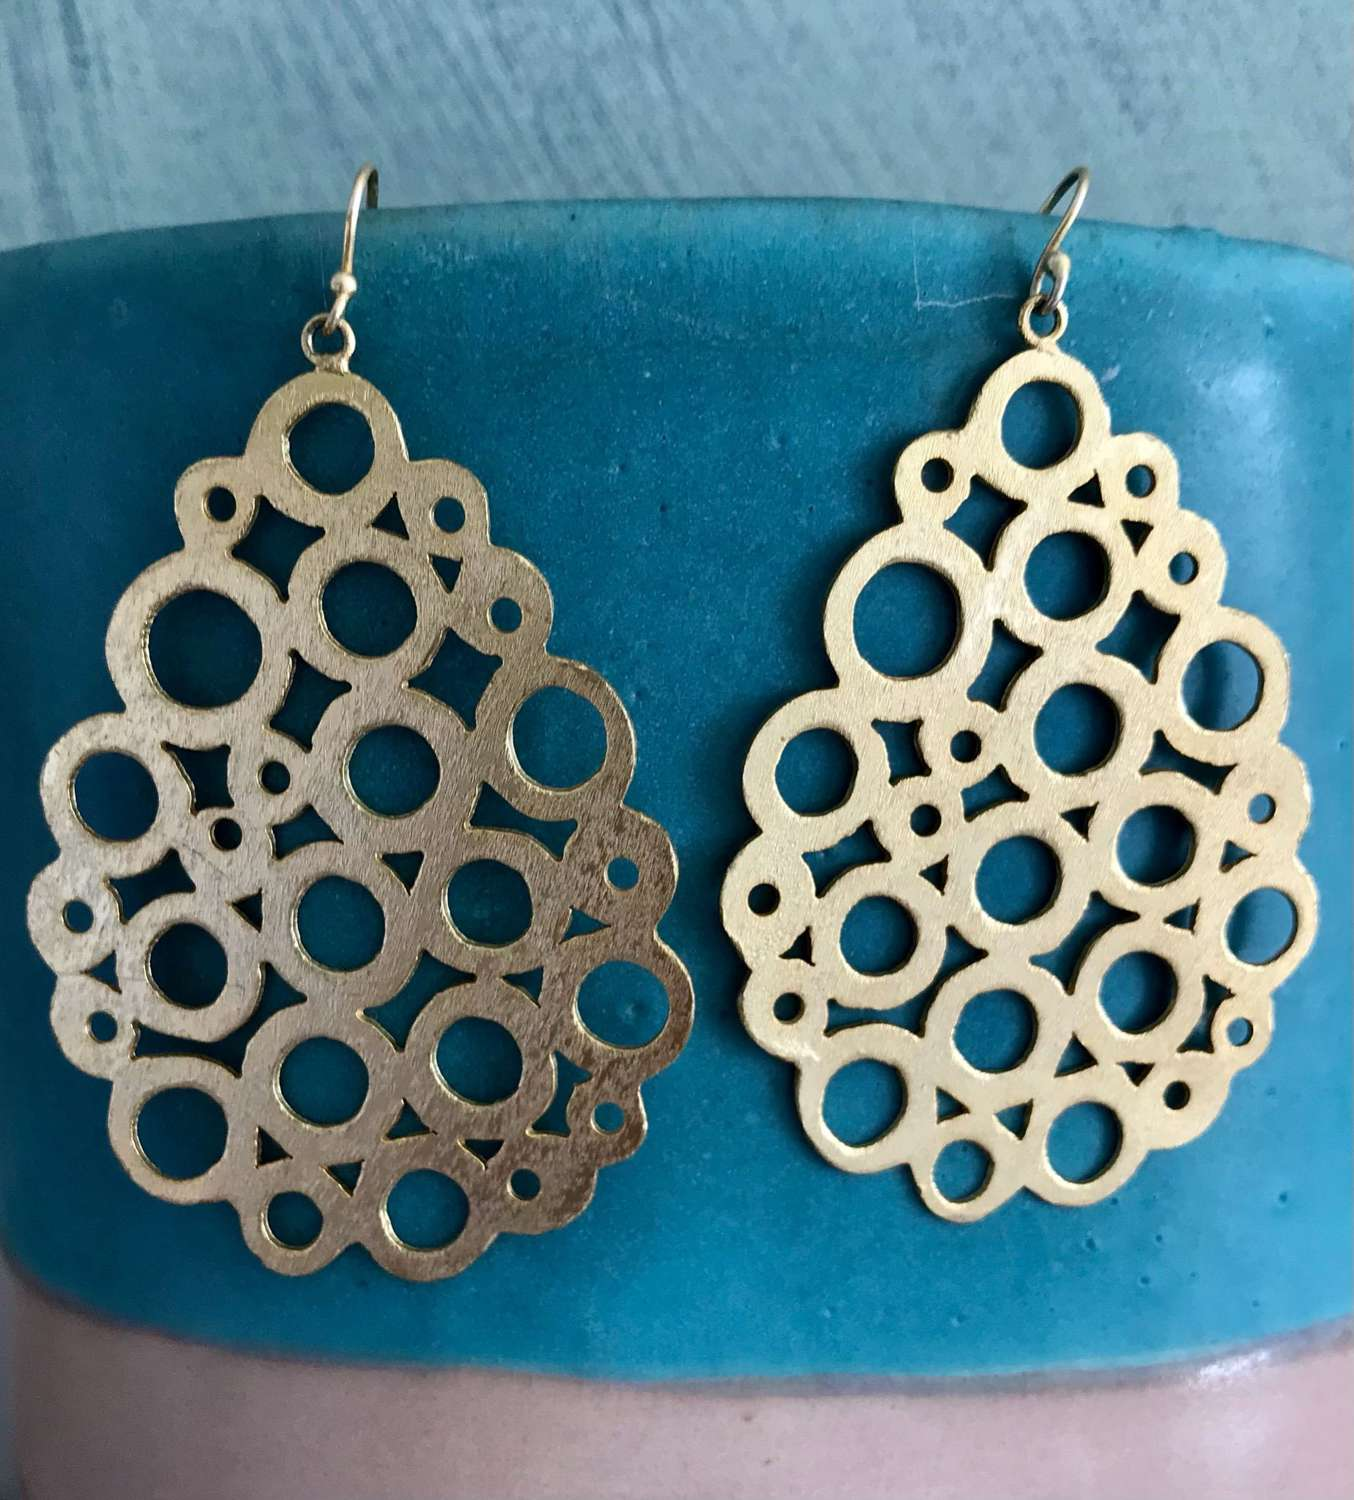 Circles on circles earrings